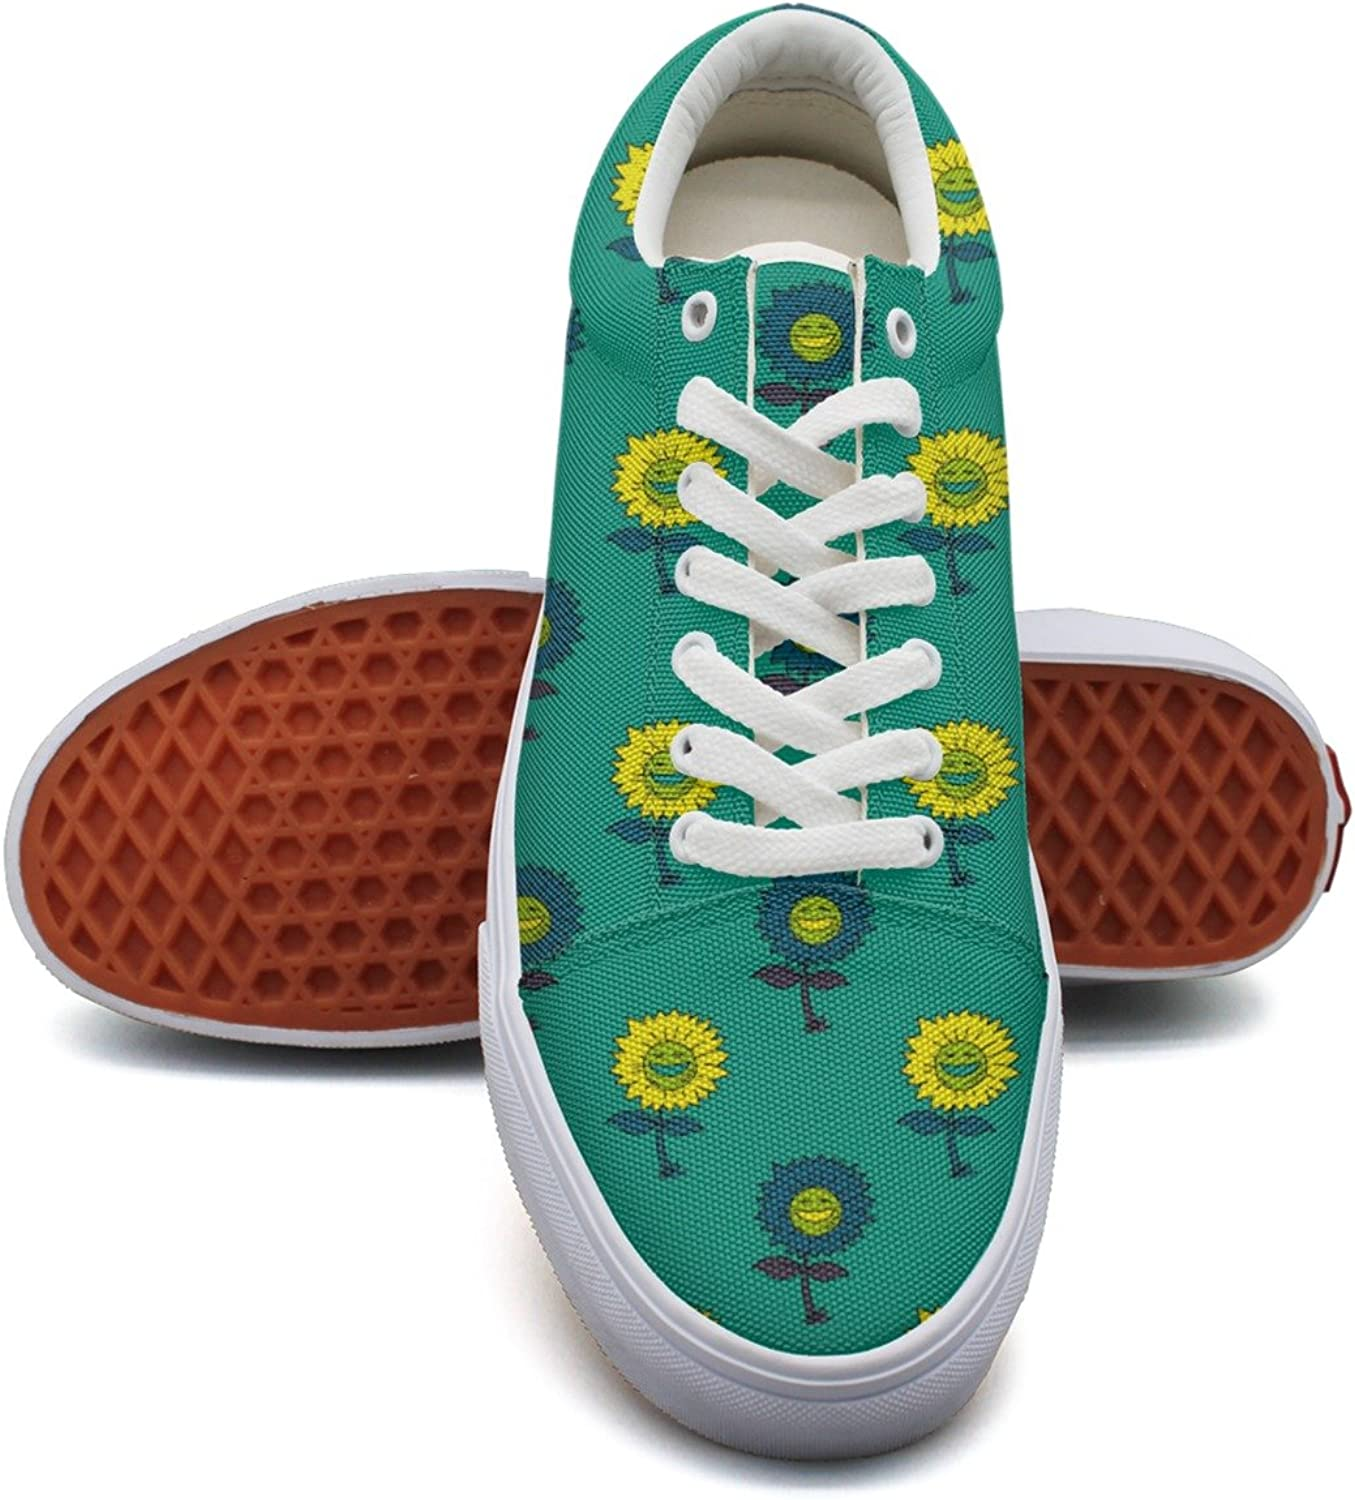 Feenfling Smile Sunflower Leaves Womens Plain Canvas Deck shoes Low Top Classic Sneakers for Woman